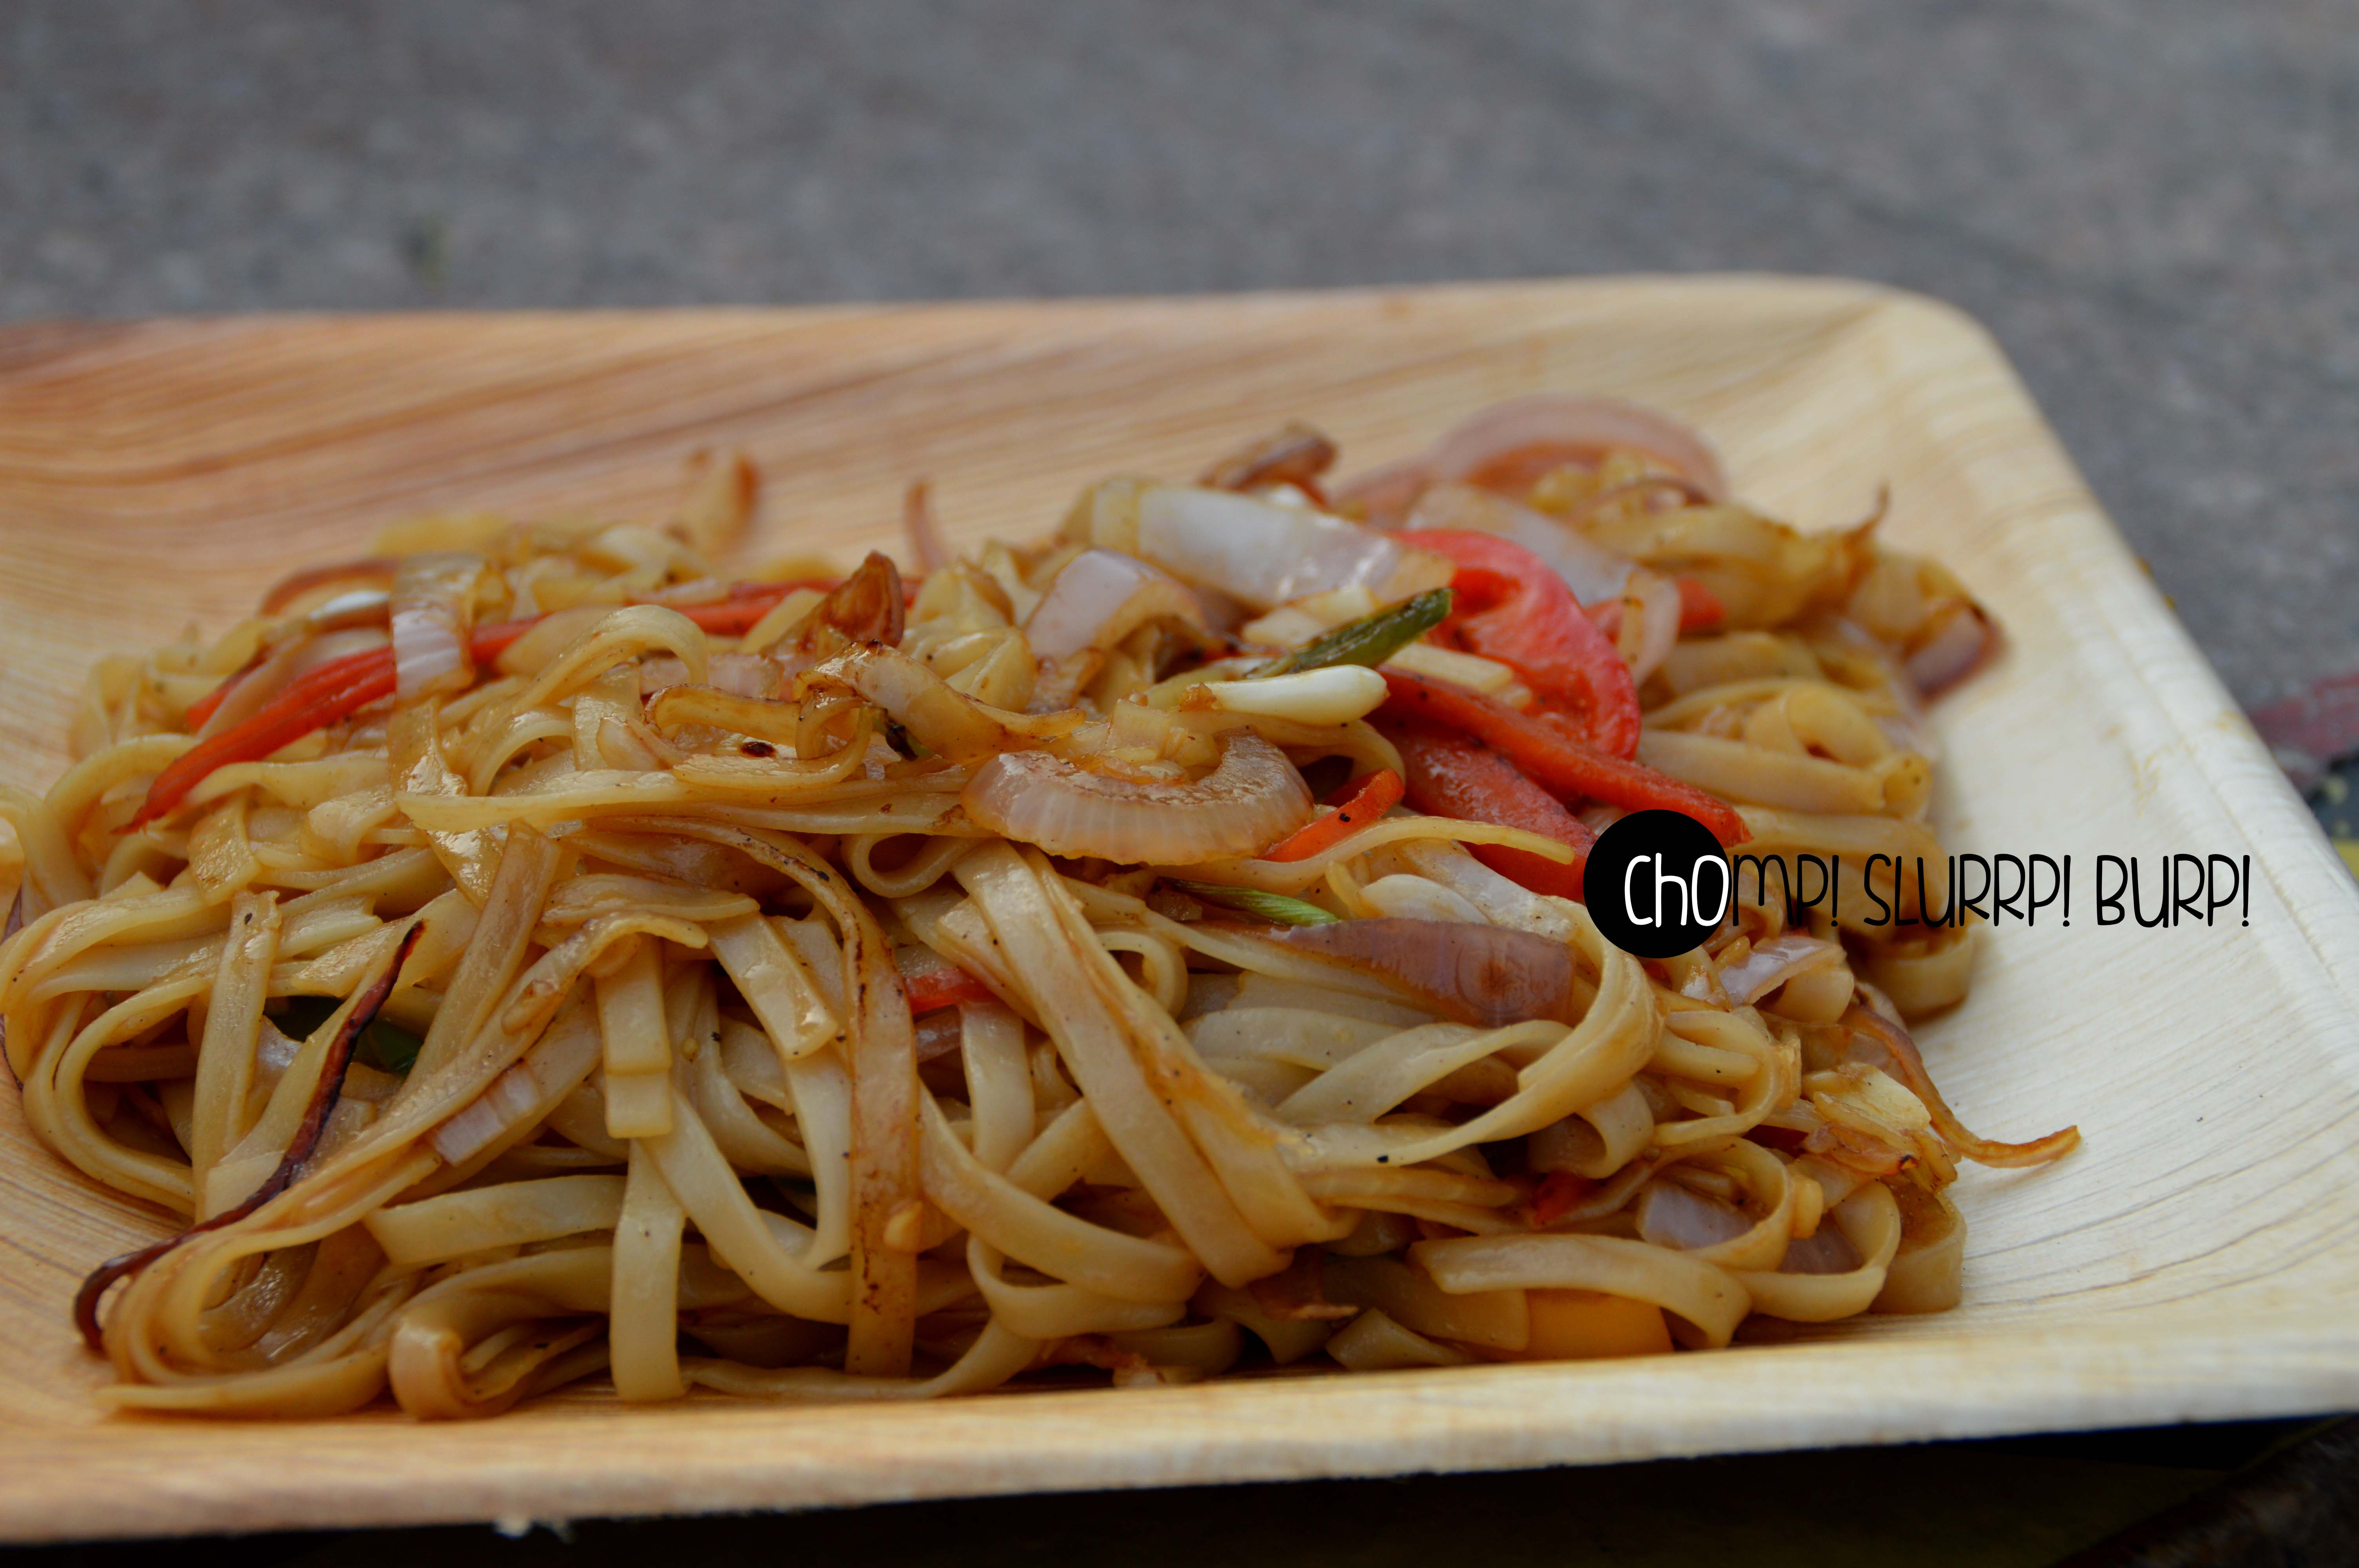 hubachi udon noodles with garlic soya sauce